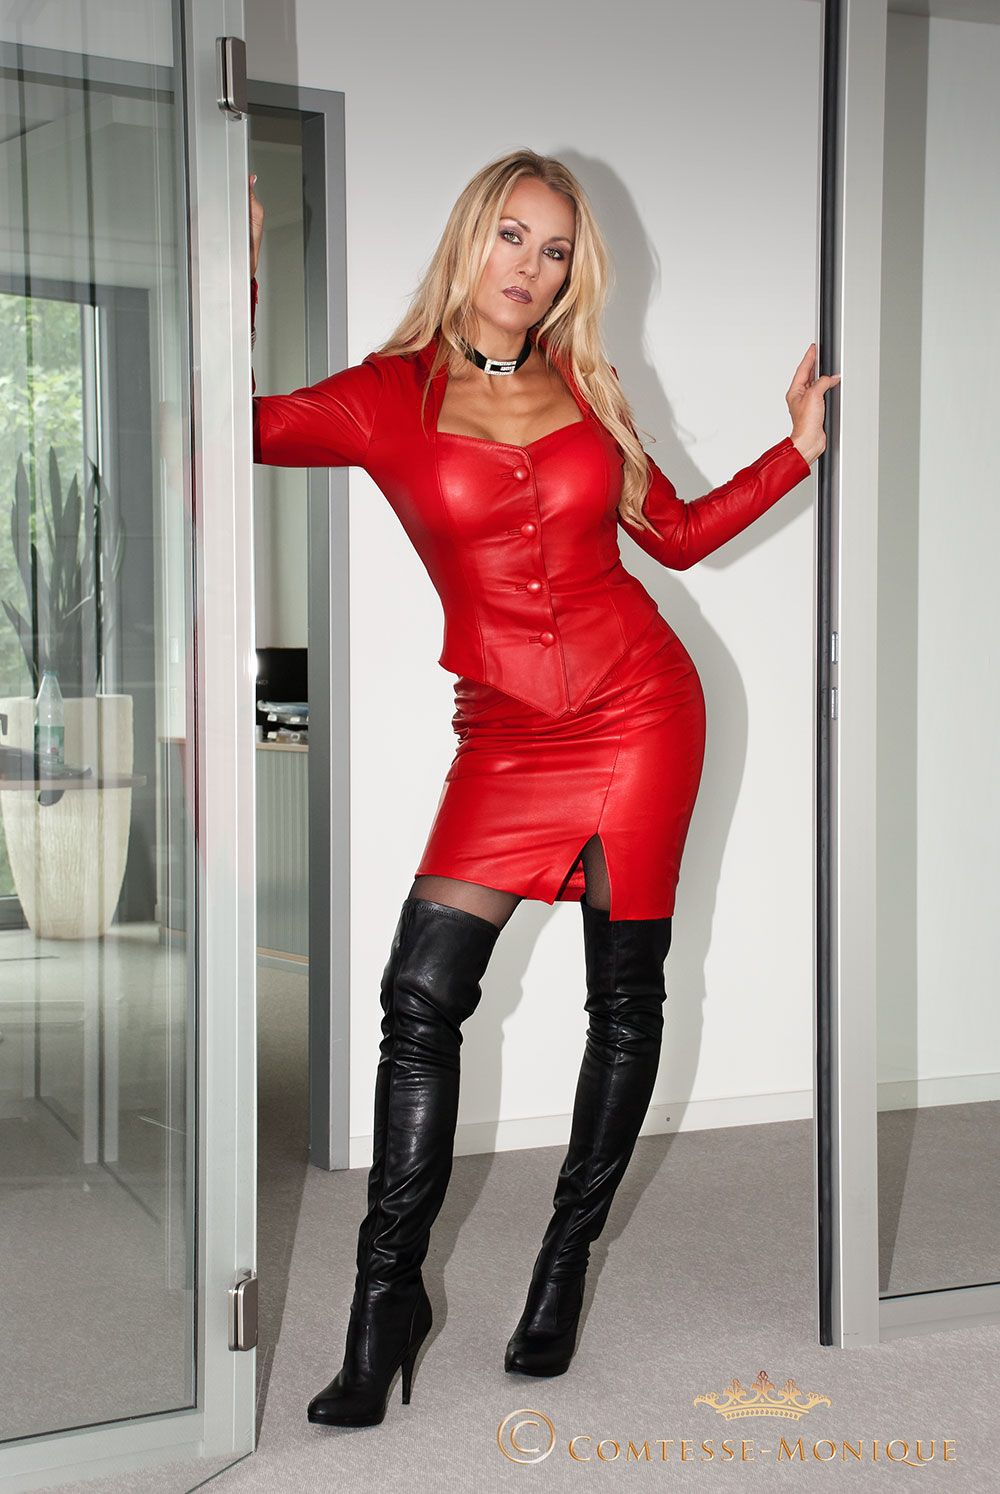 ComtesseMonique red leather skirt suit in the office